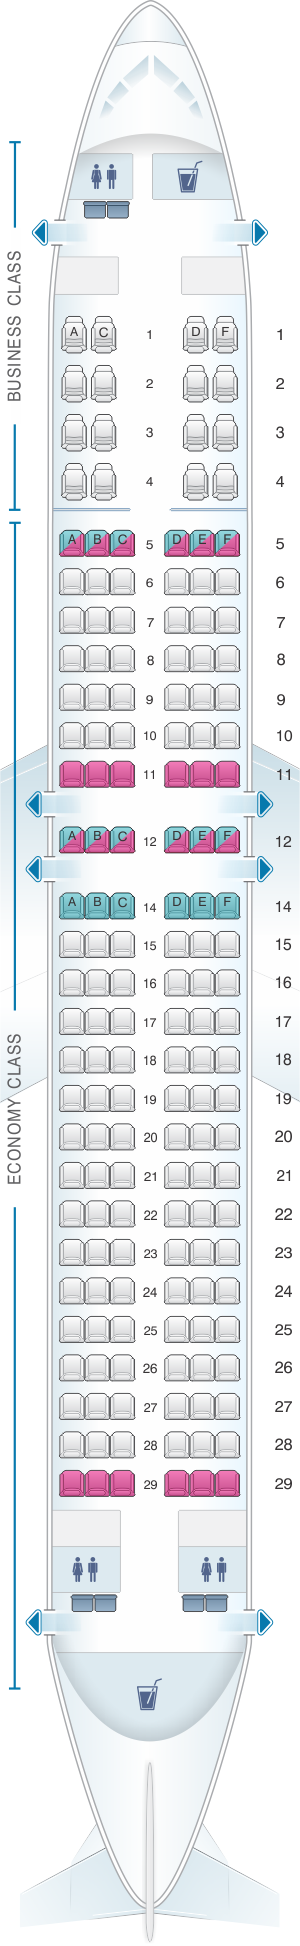 Seat map for Malaysia Airlines Boeing B737 800 160PAX